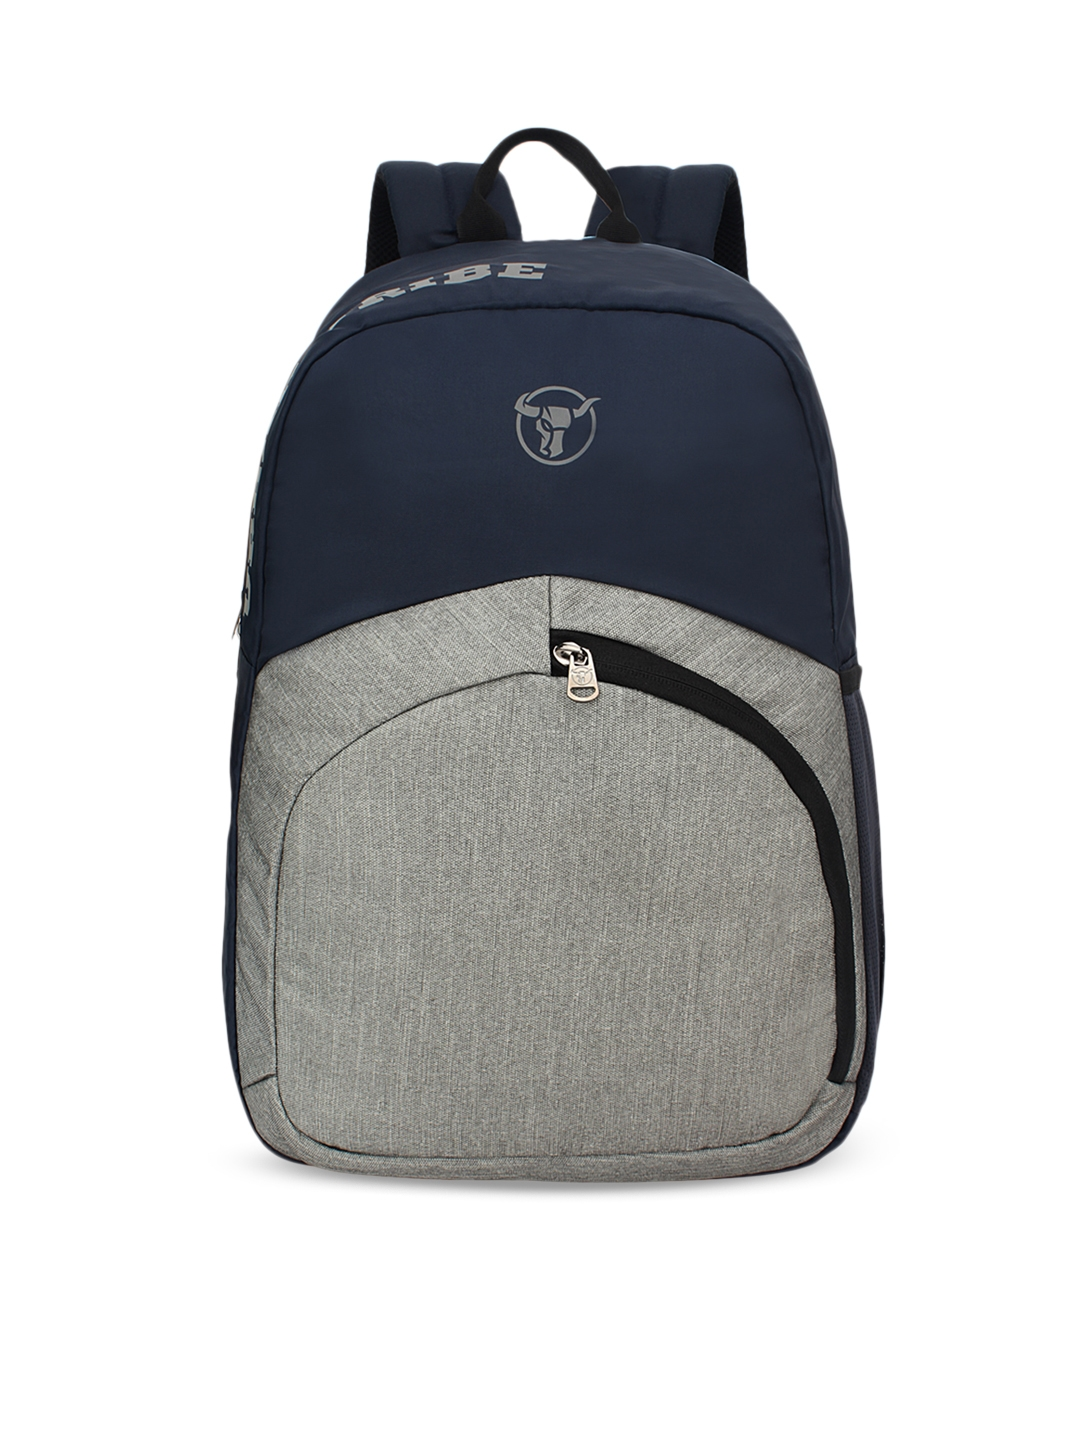 URBAN TRIBE Unisex Blue   Grey Solid Backpack